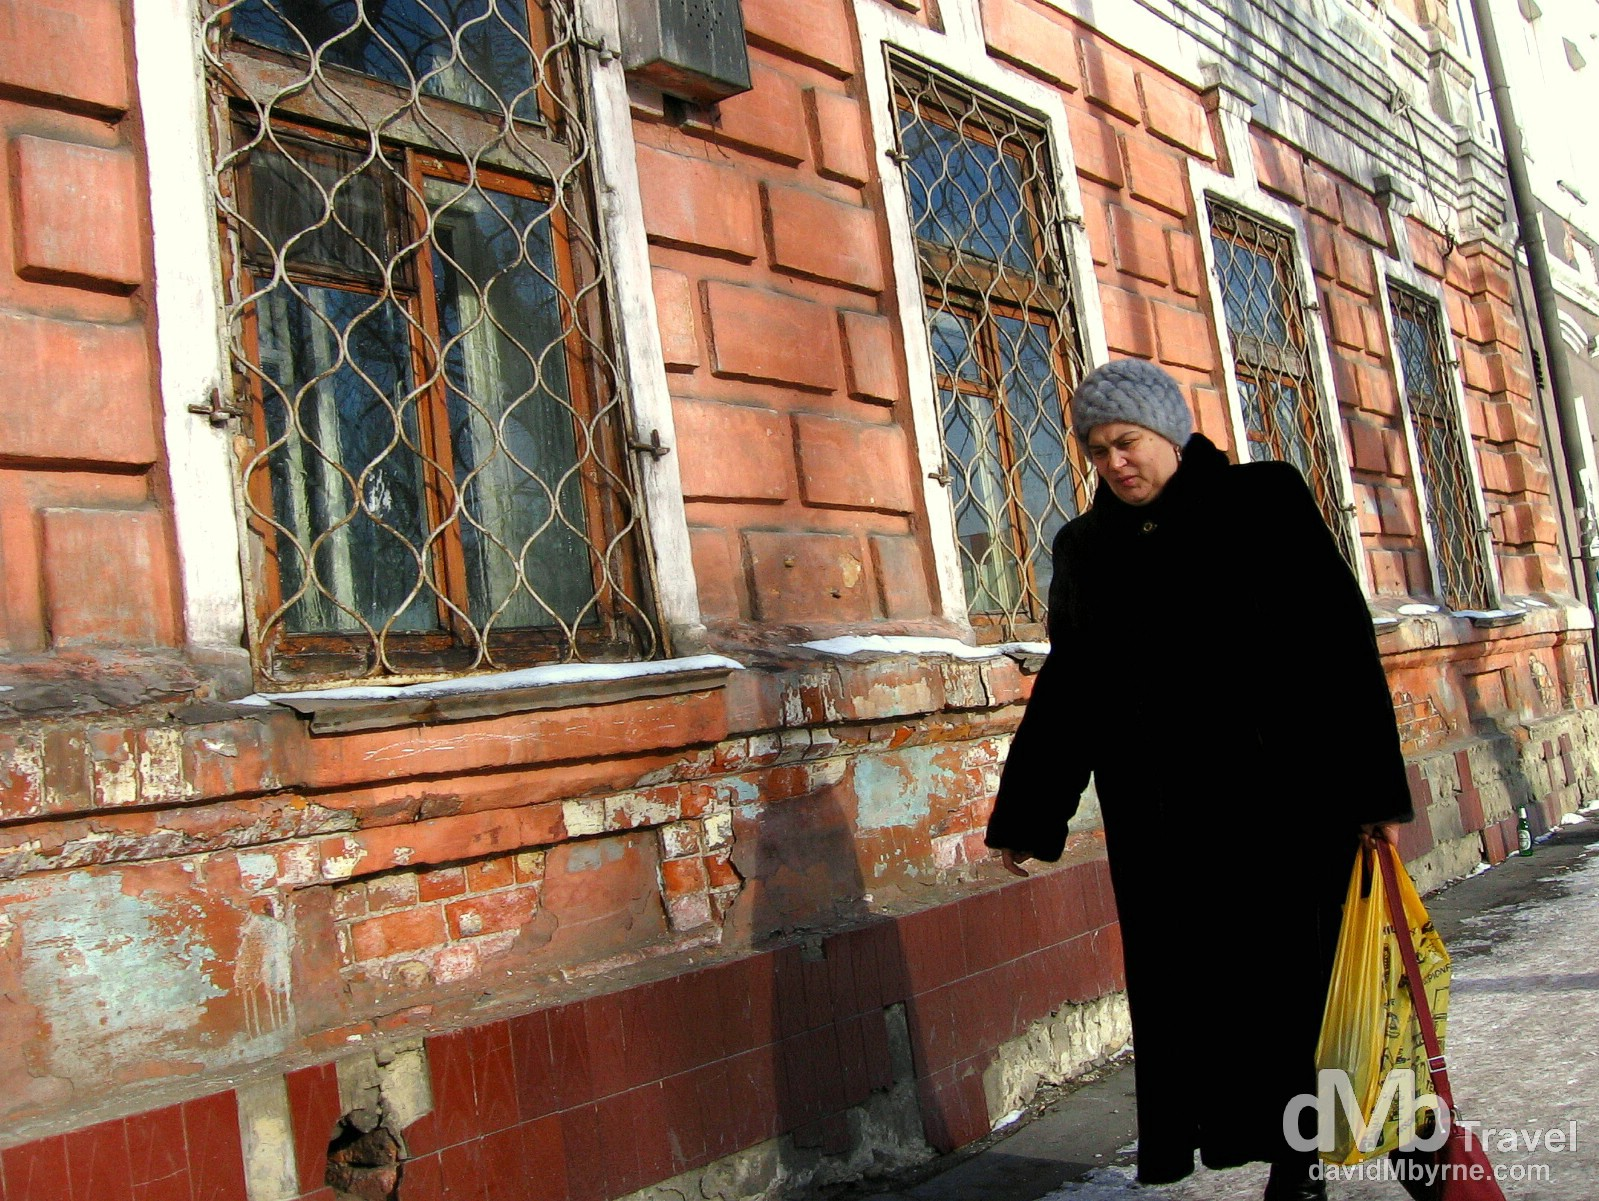 On the streets of Irkutsk, Siberian Russia. February 18, 2006.